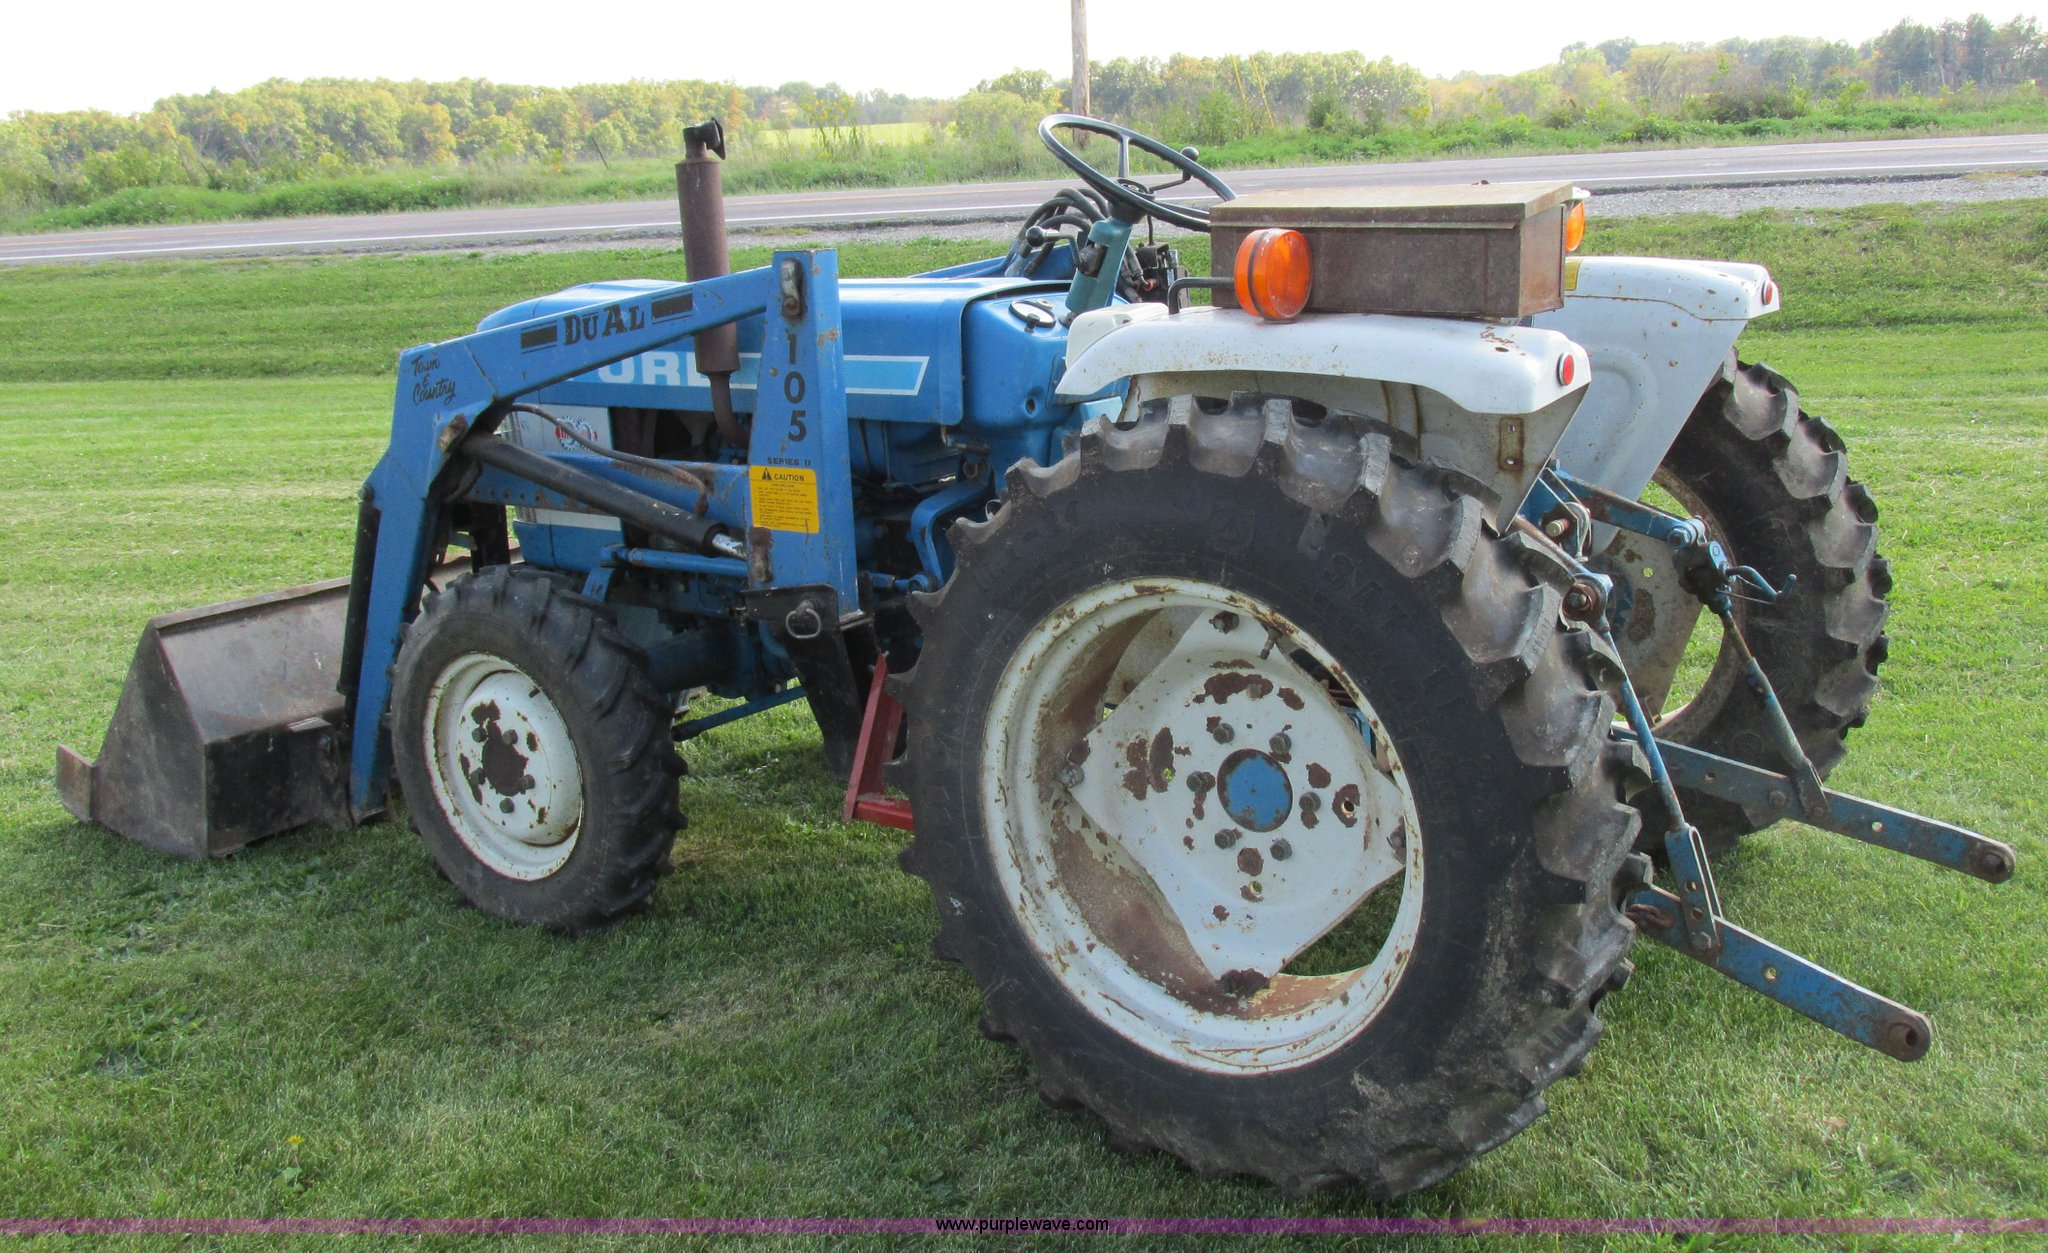 Mesmerizing Ford Tractor 1710 Wiring Diagram Ideas - Best Image ...